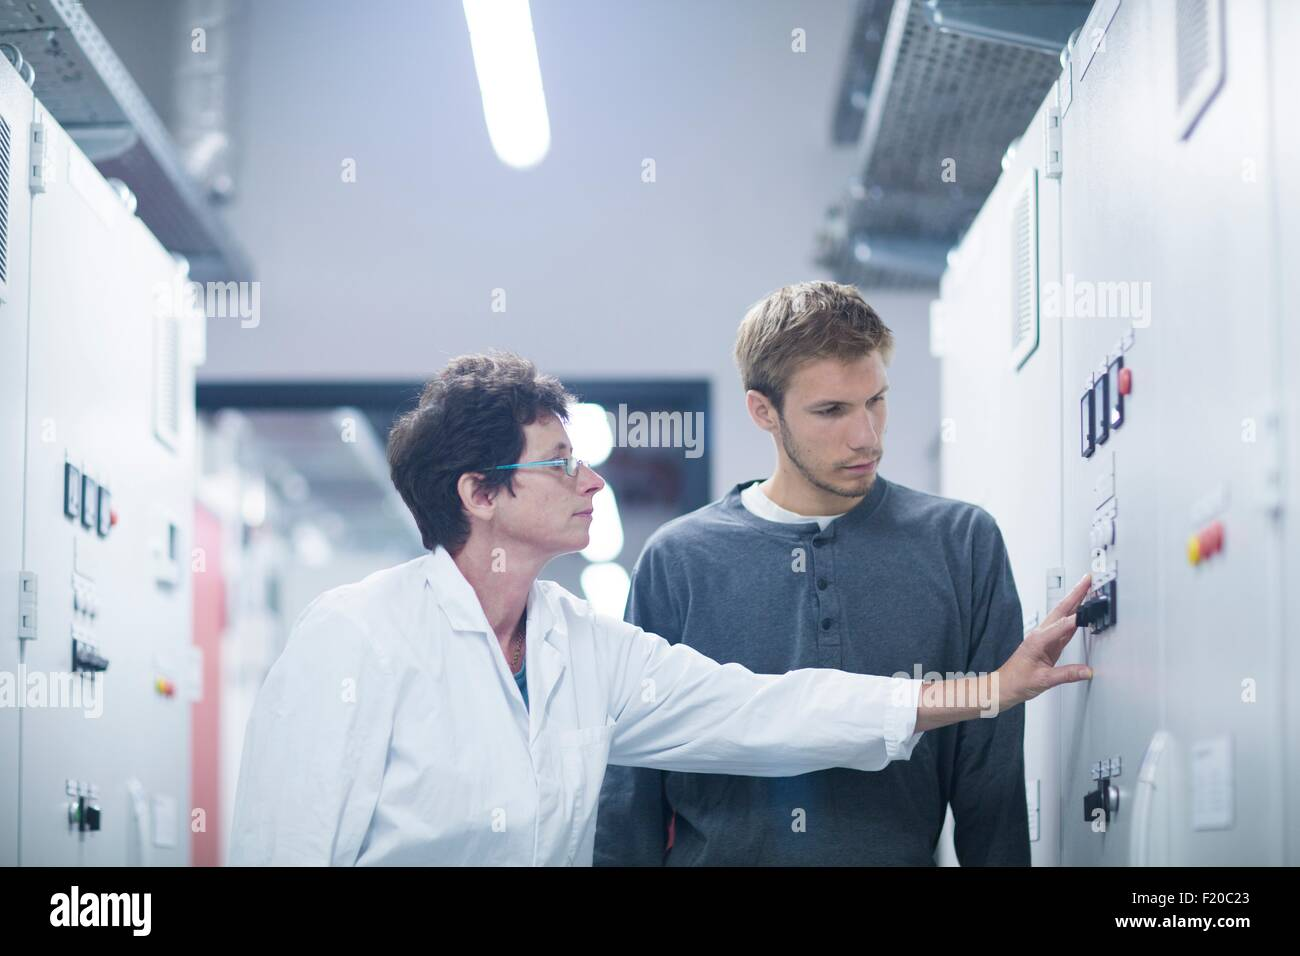 Scientist and technician pressing switch in technical room - Stock Image